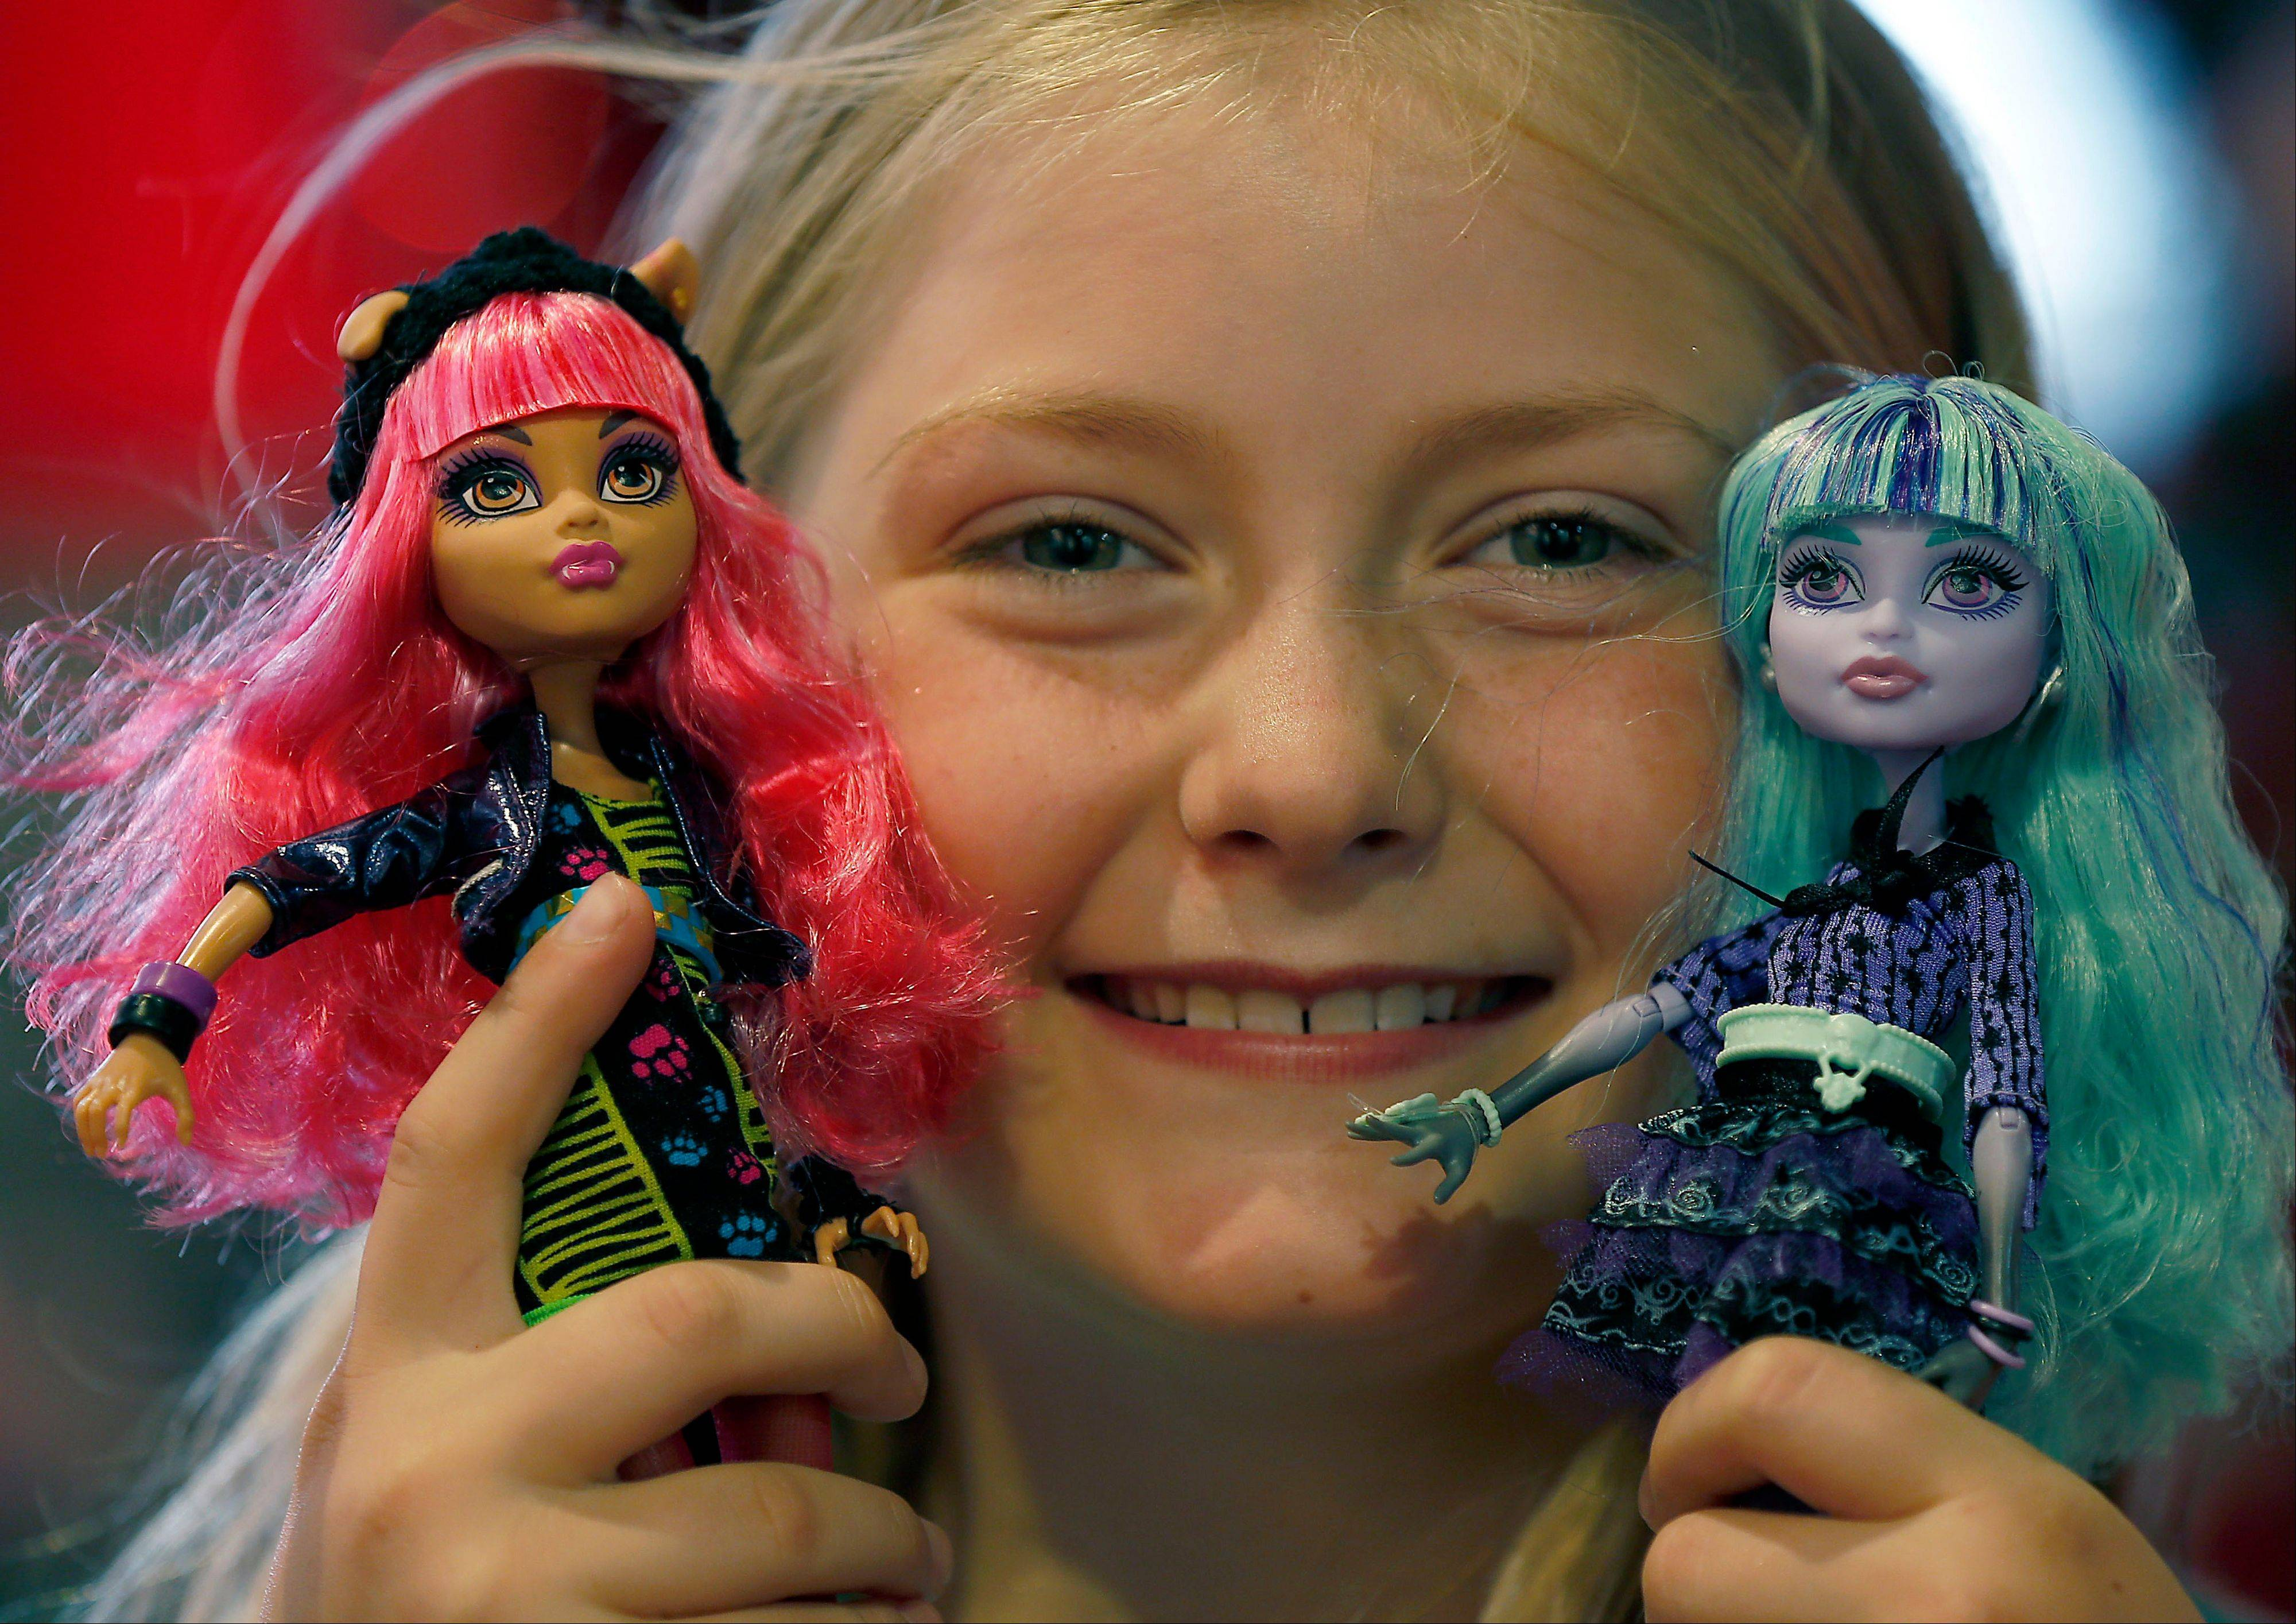 Tegan, 9, with her Monster High Dolls. Mattel's Monster High Dolls, with neon hair and punk clothing, have grown to an estimated $500 million in annual sales.